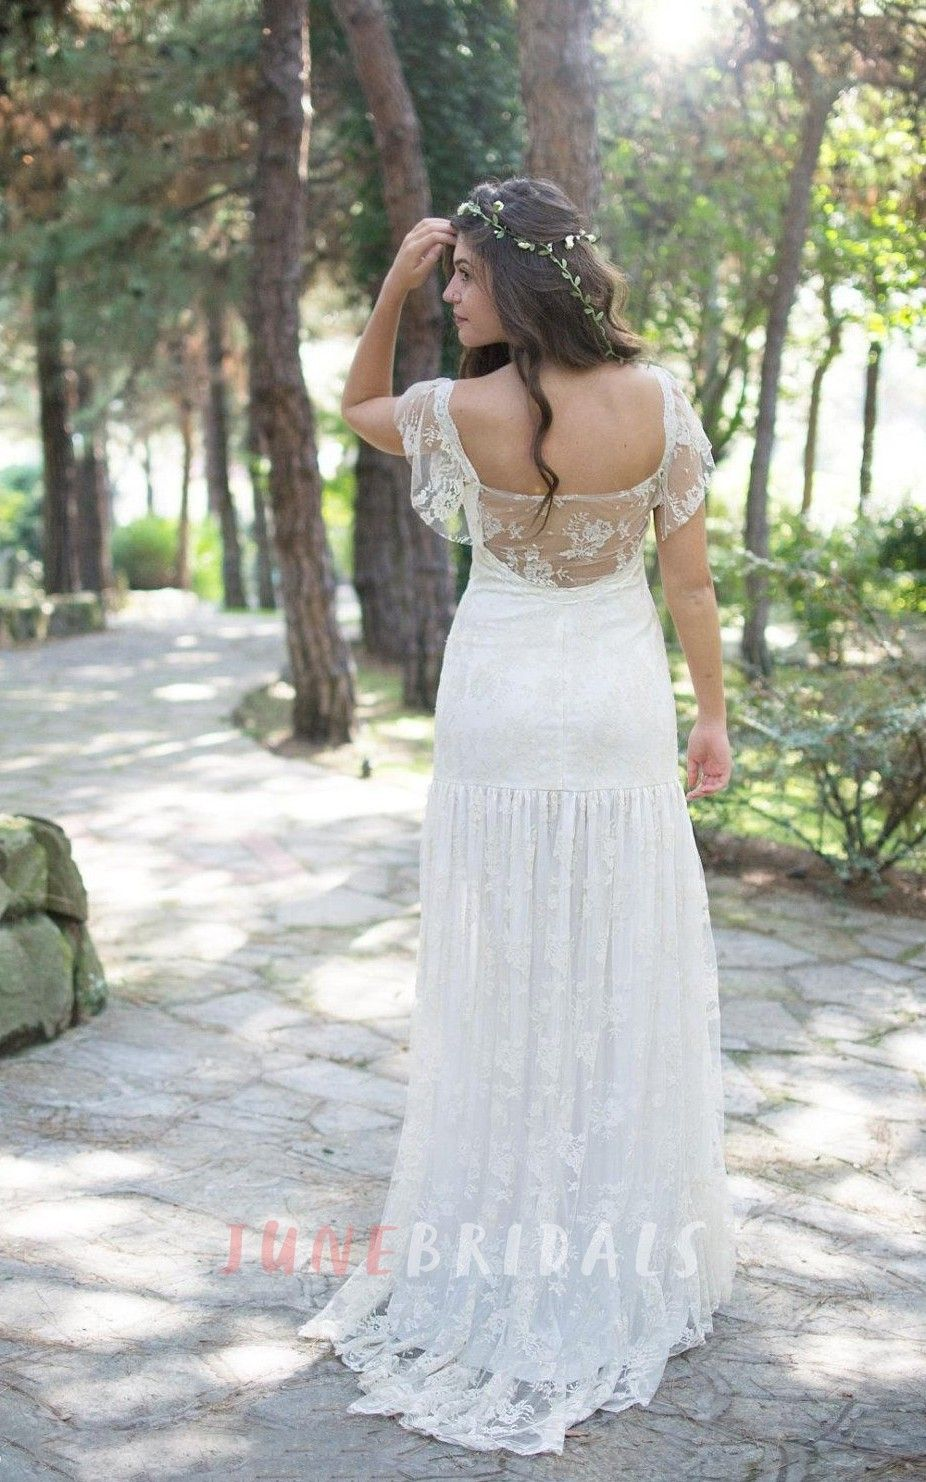 Lace hippie wedding dress  Square Cap Sheath Lace Wedding Dress With Pleats And Illusion Back